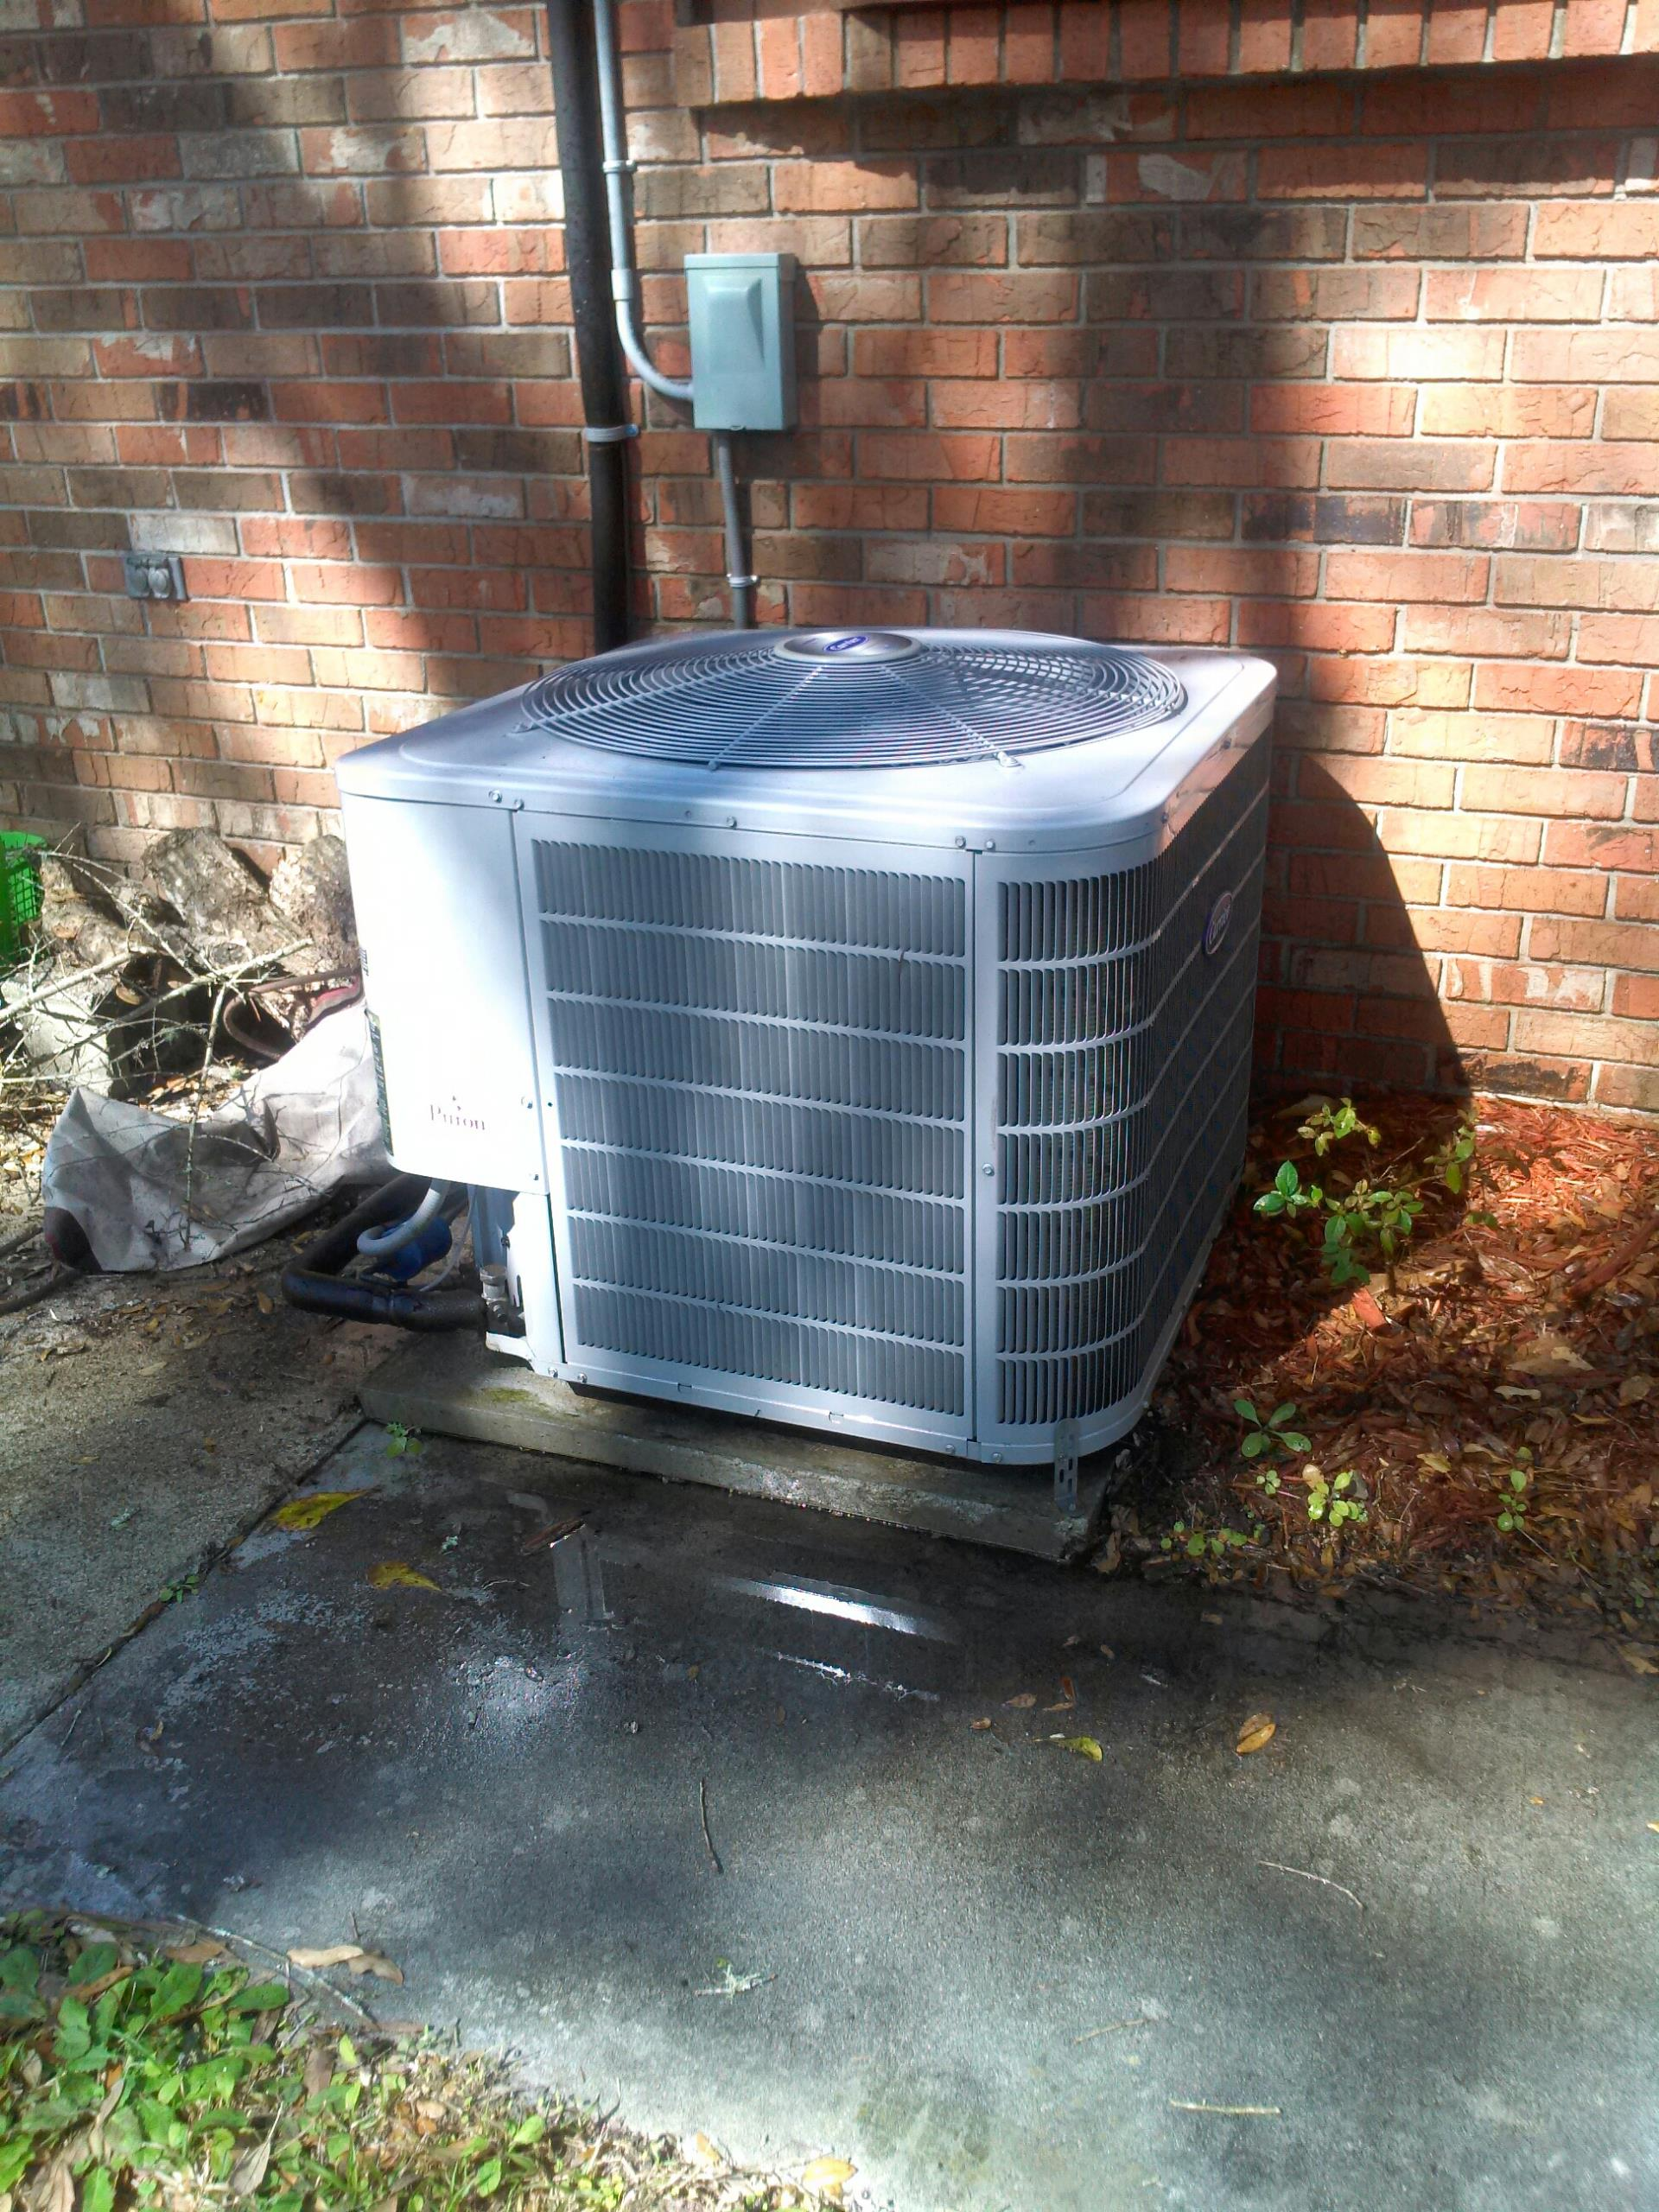 Saint Augustine, FL - Performed maintenance on Carrier heat pump system